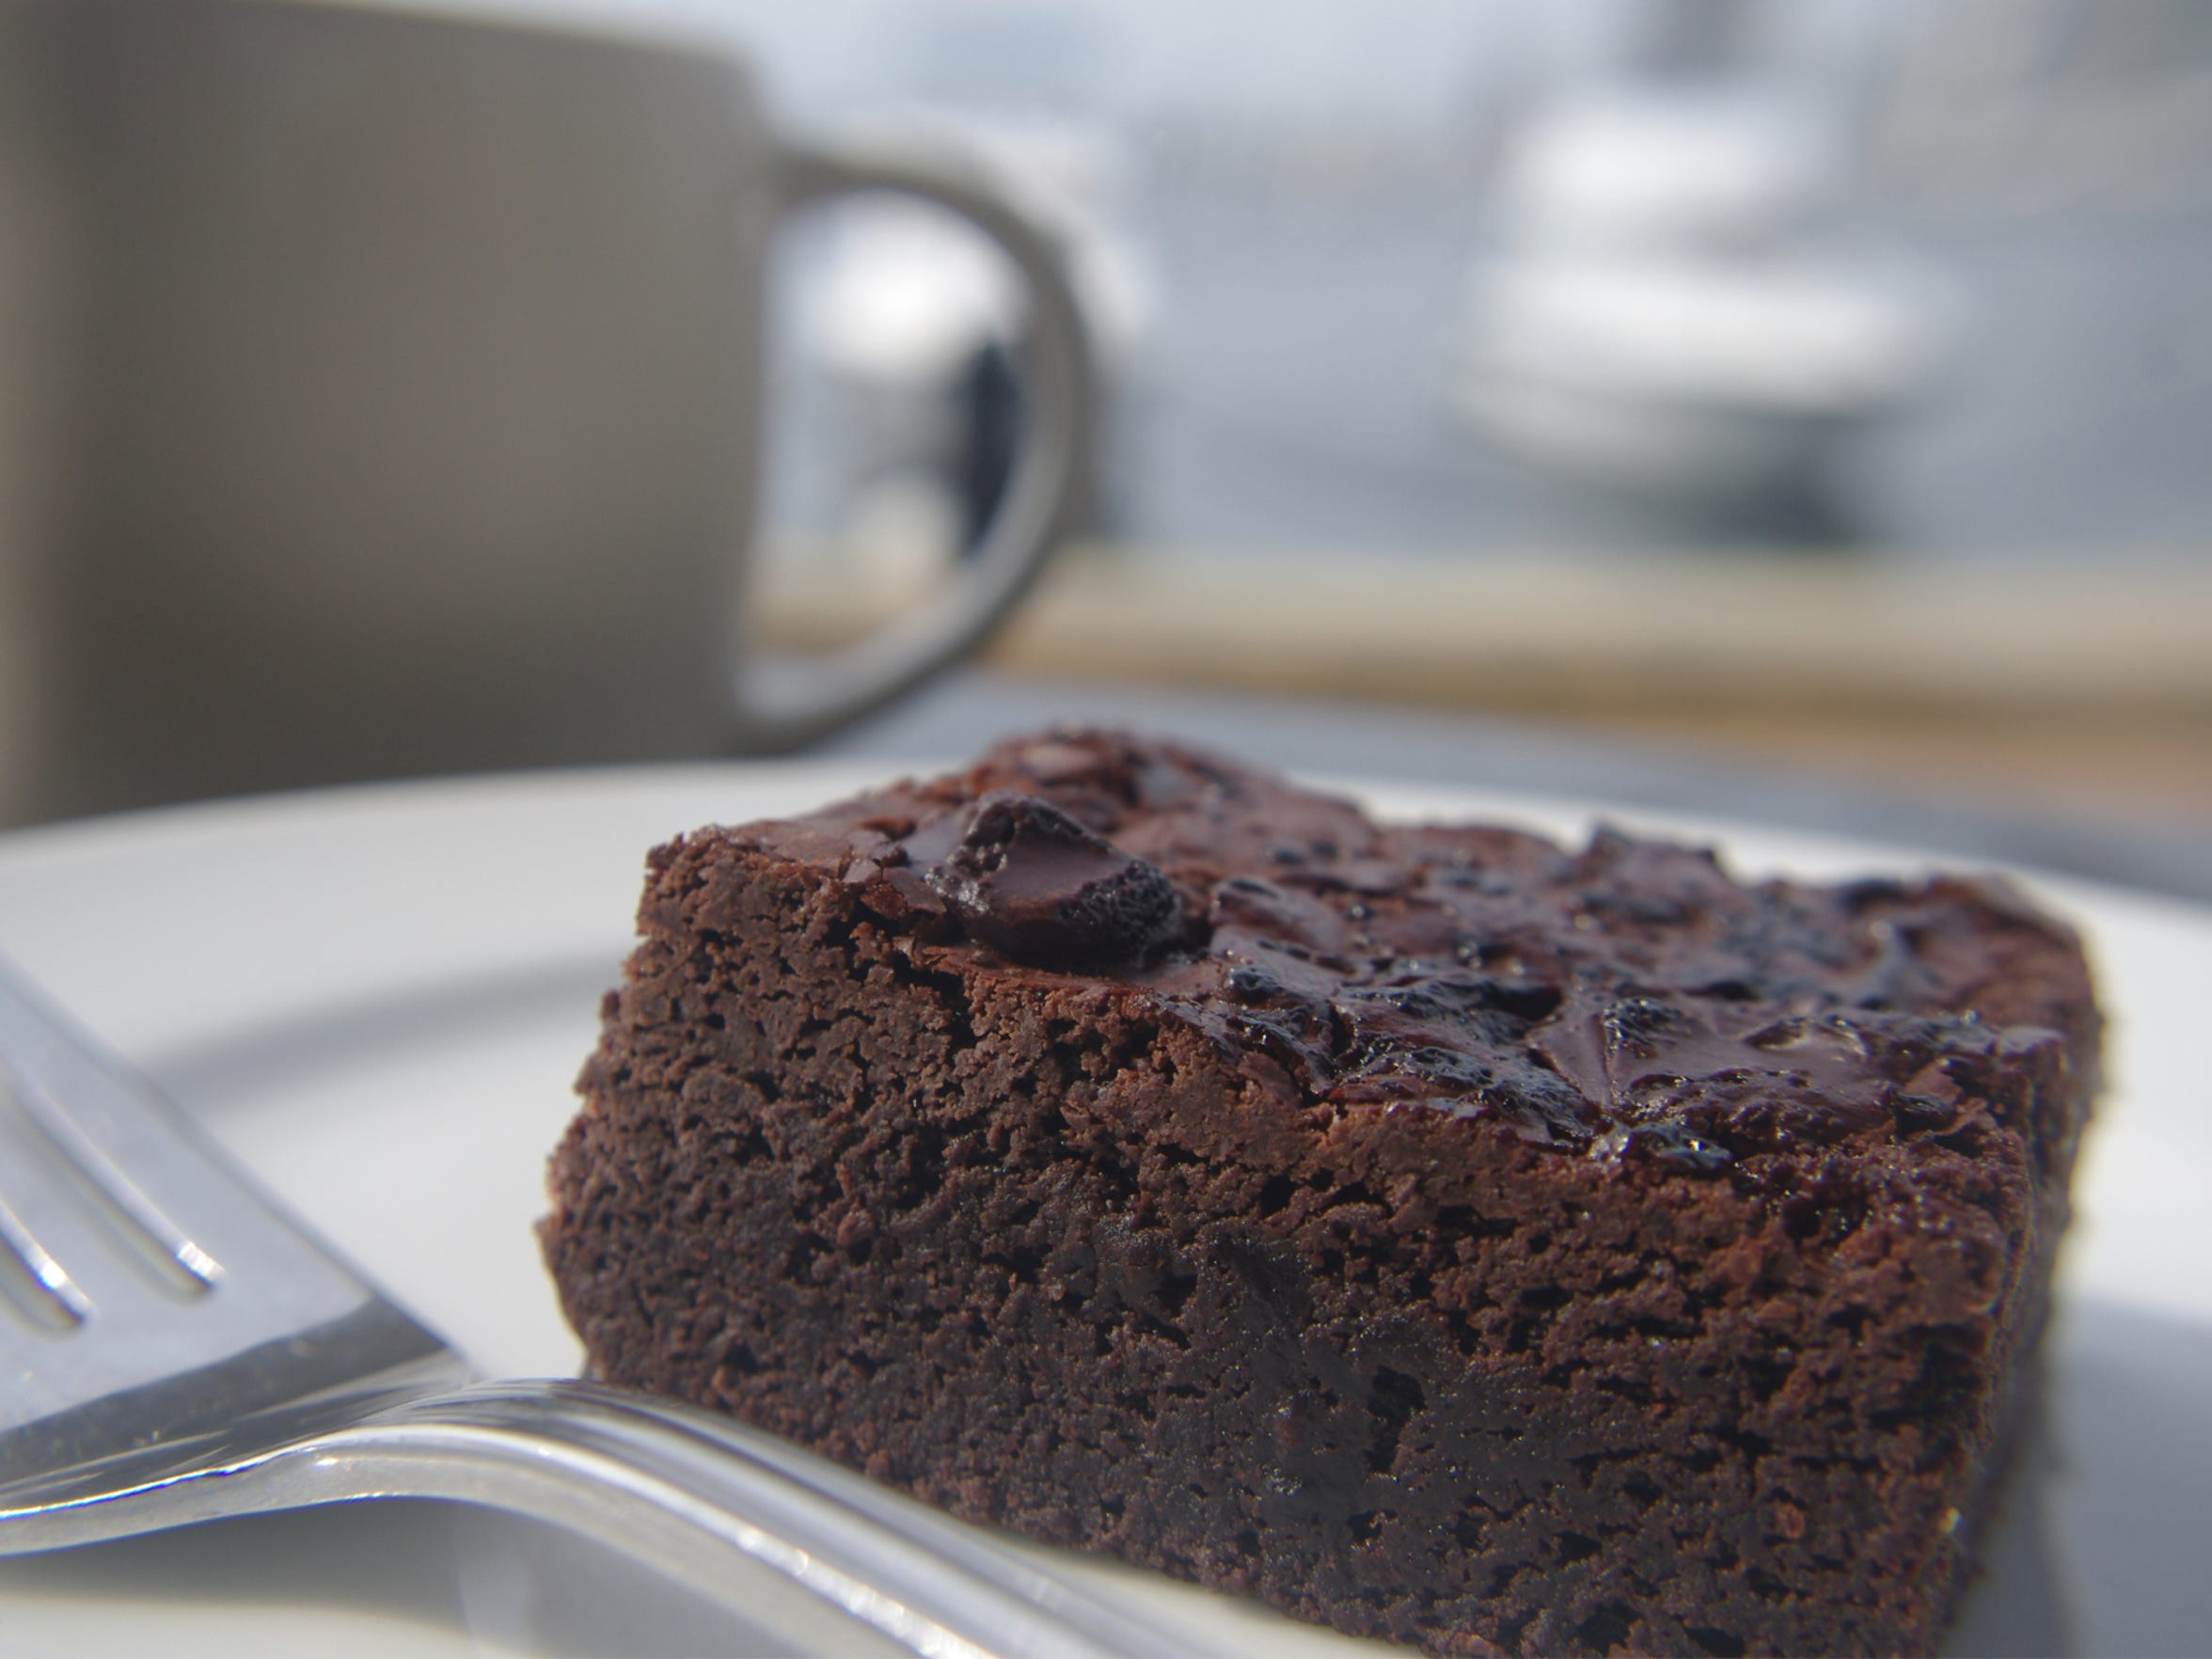 Mark Bittman's brownies will make you ditch your brownie mix habit.